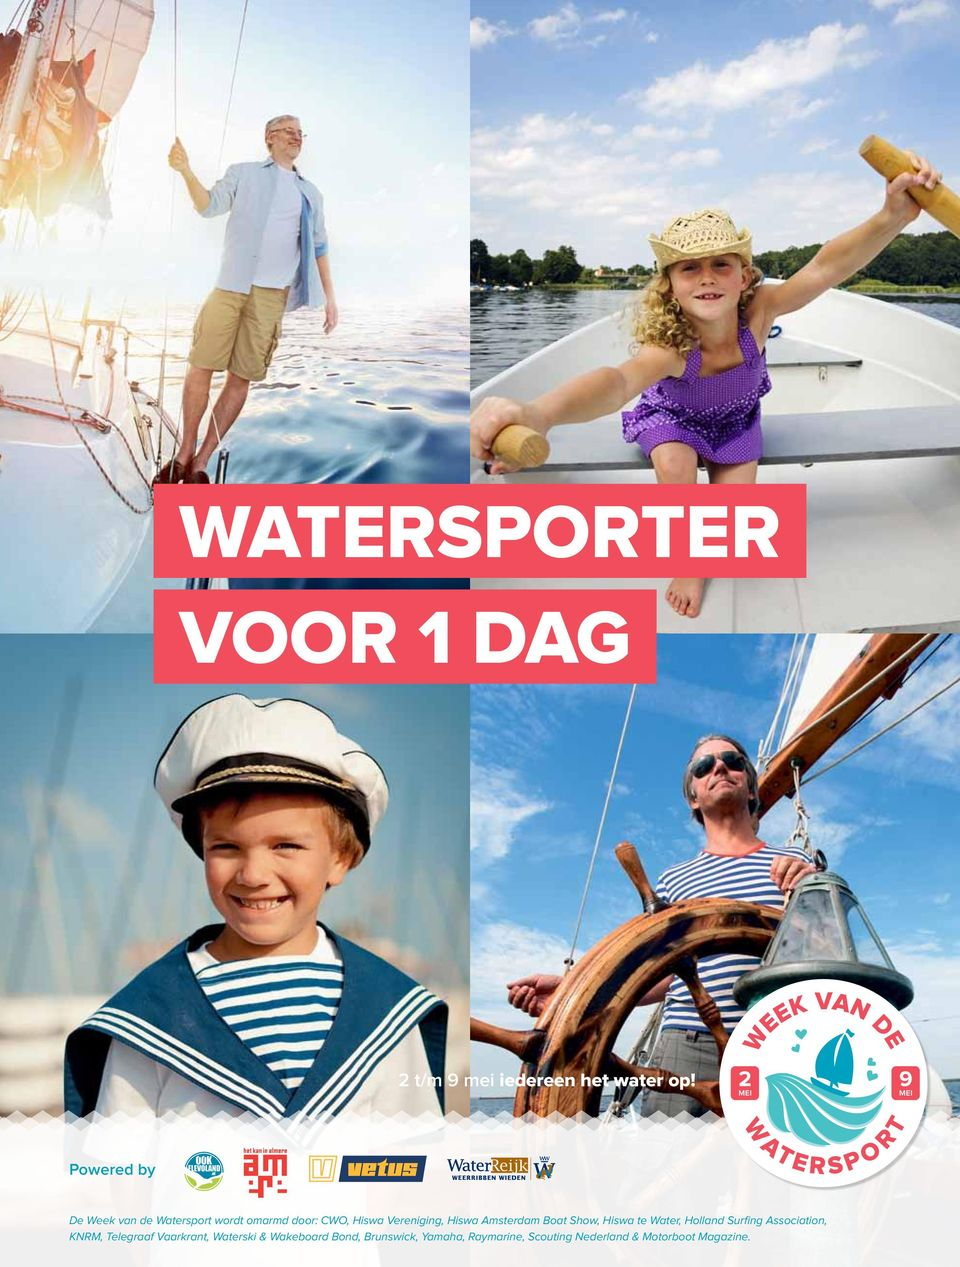 Amsterdam Boat Show, Hiswa te Water, Holland Surfing Association, KNRM,